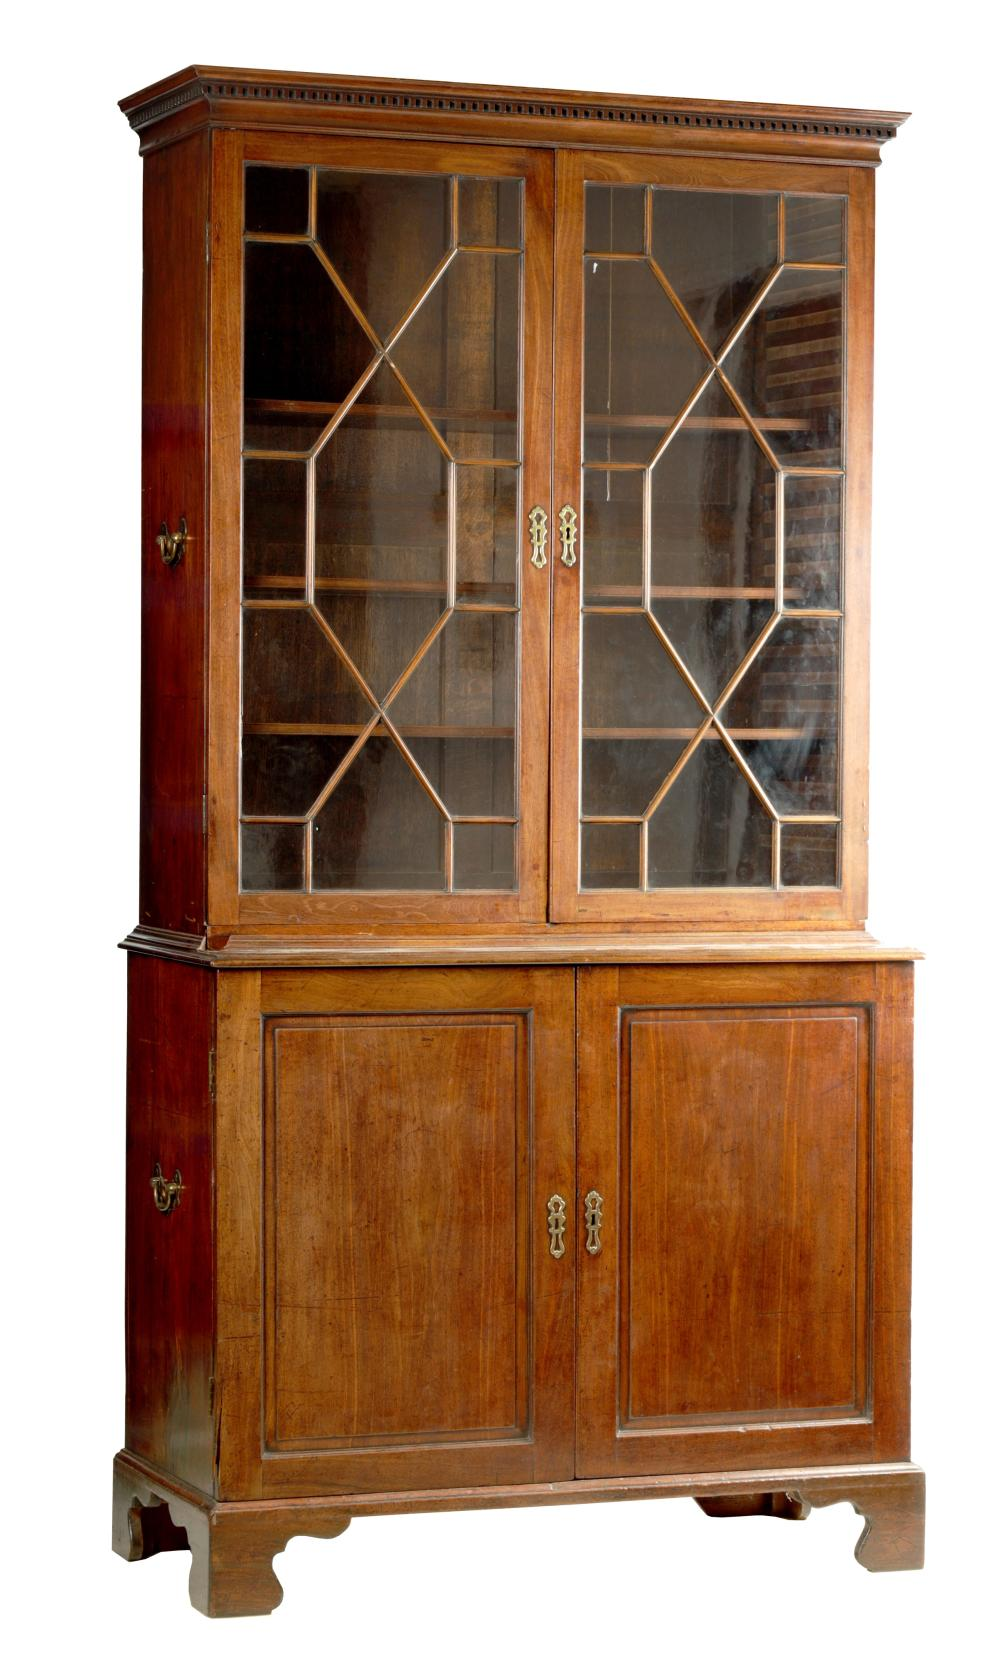 A GEORGE II MAHOGANY BOOKCASE OF SMALL PROPORTIONS